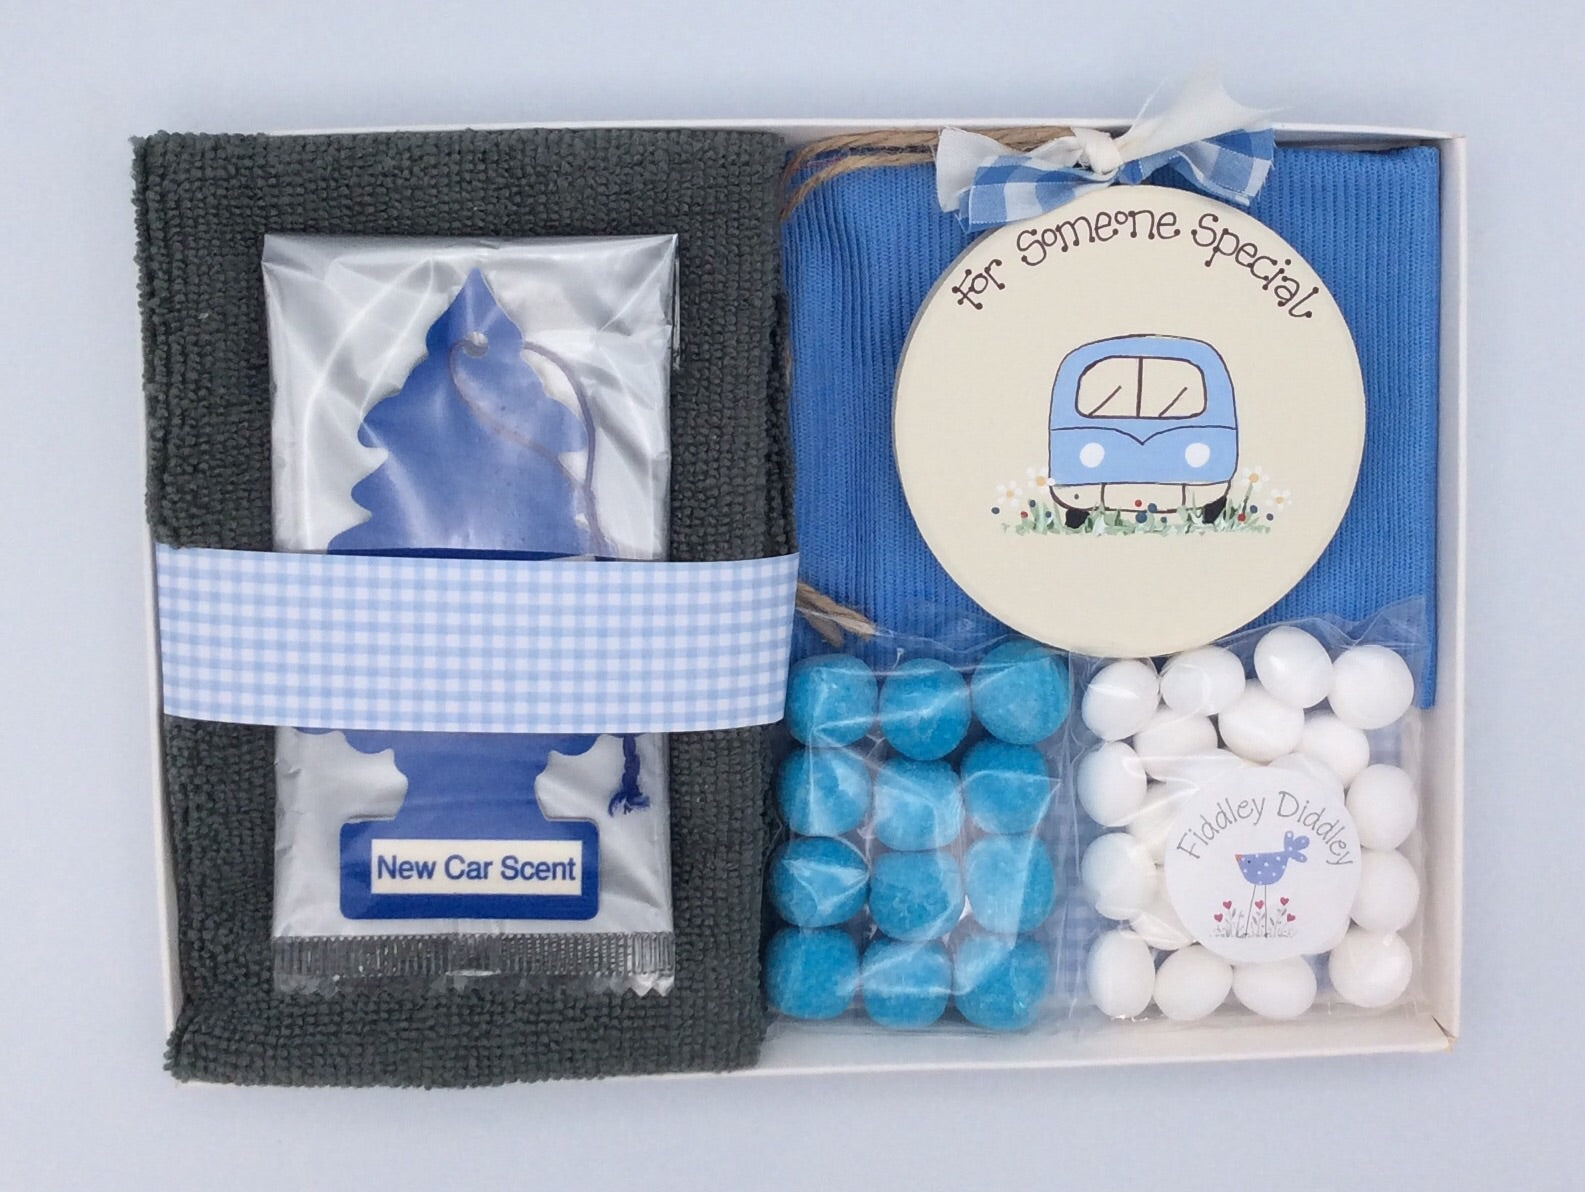 Motorists gift set